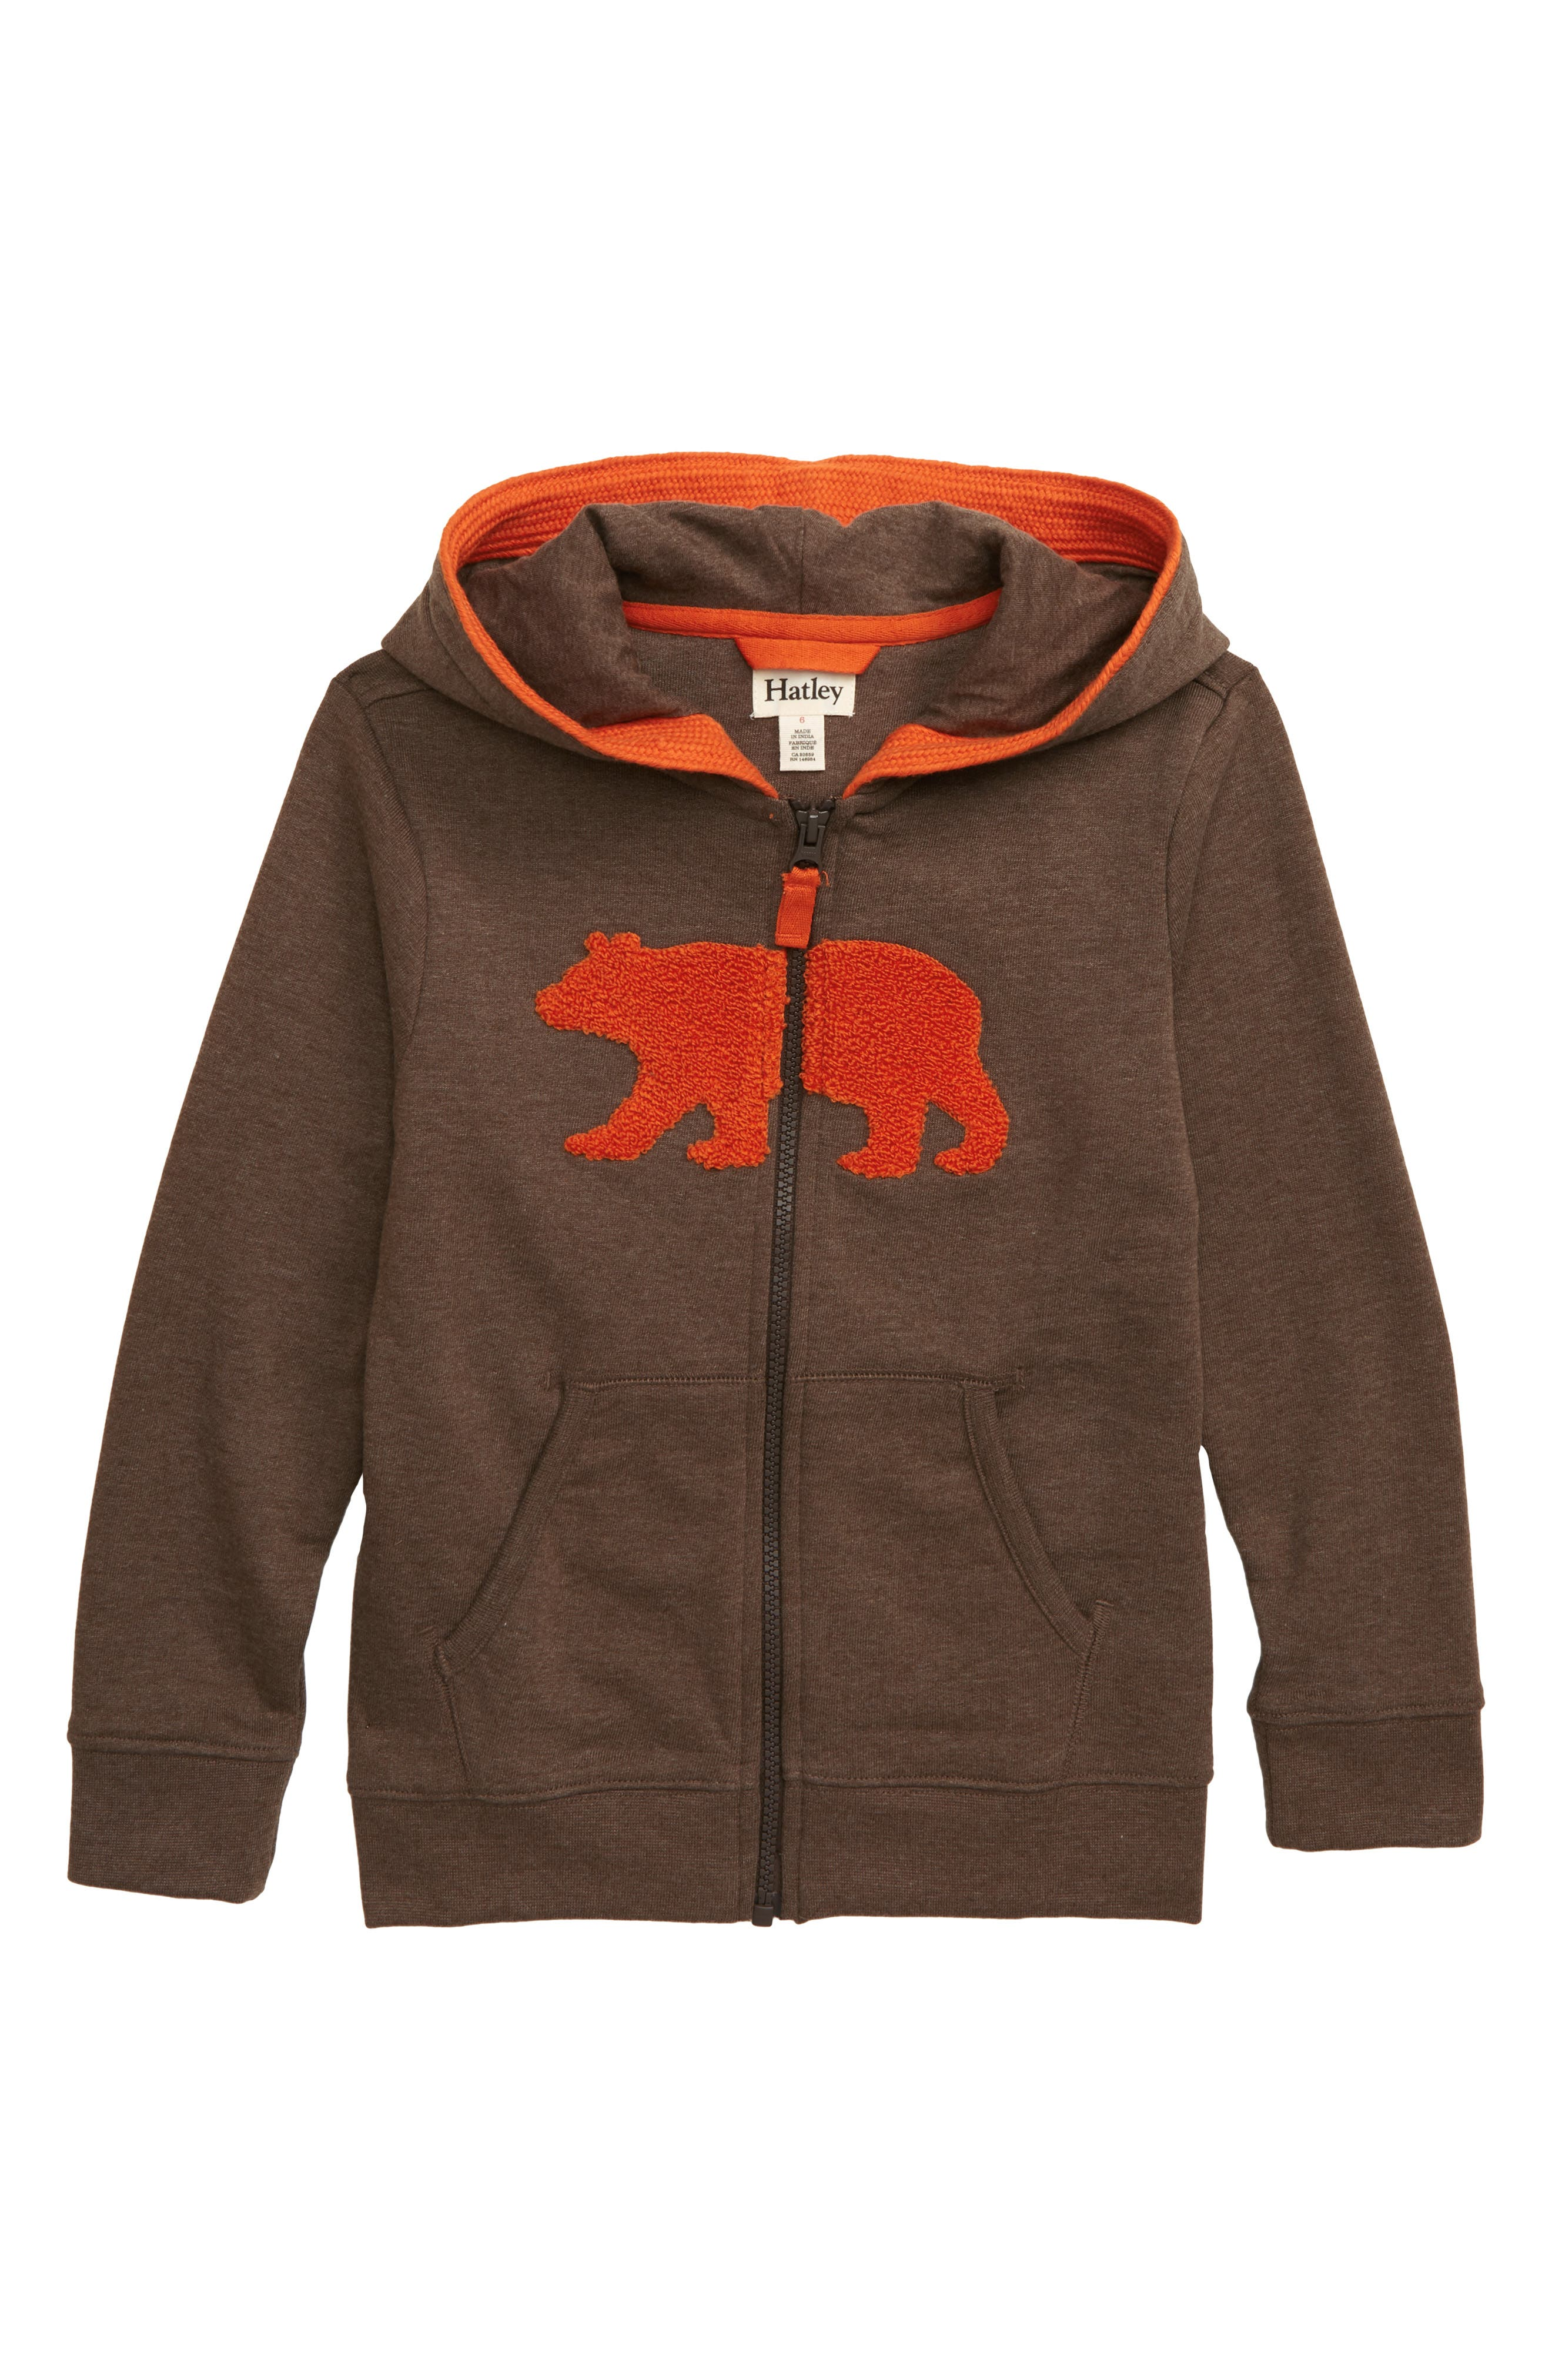 HATLEY, Brown Bear Full Zip Hoodie, Main thumbnail 1, color, BROWN